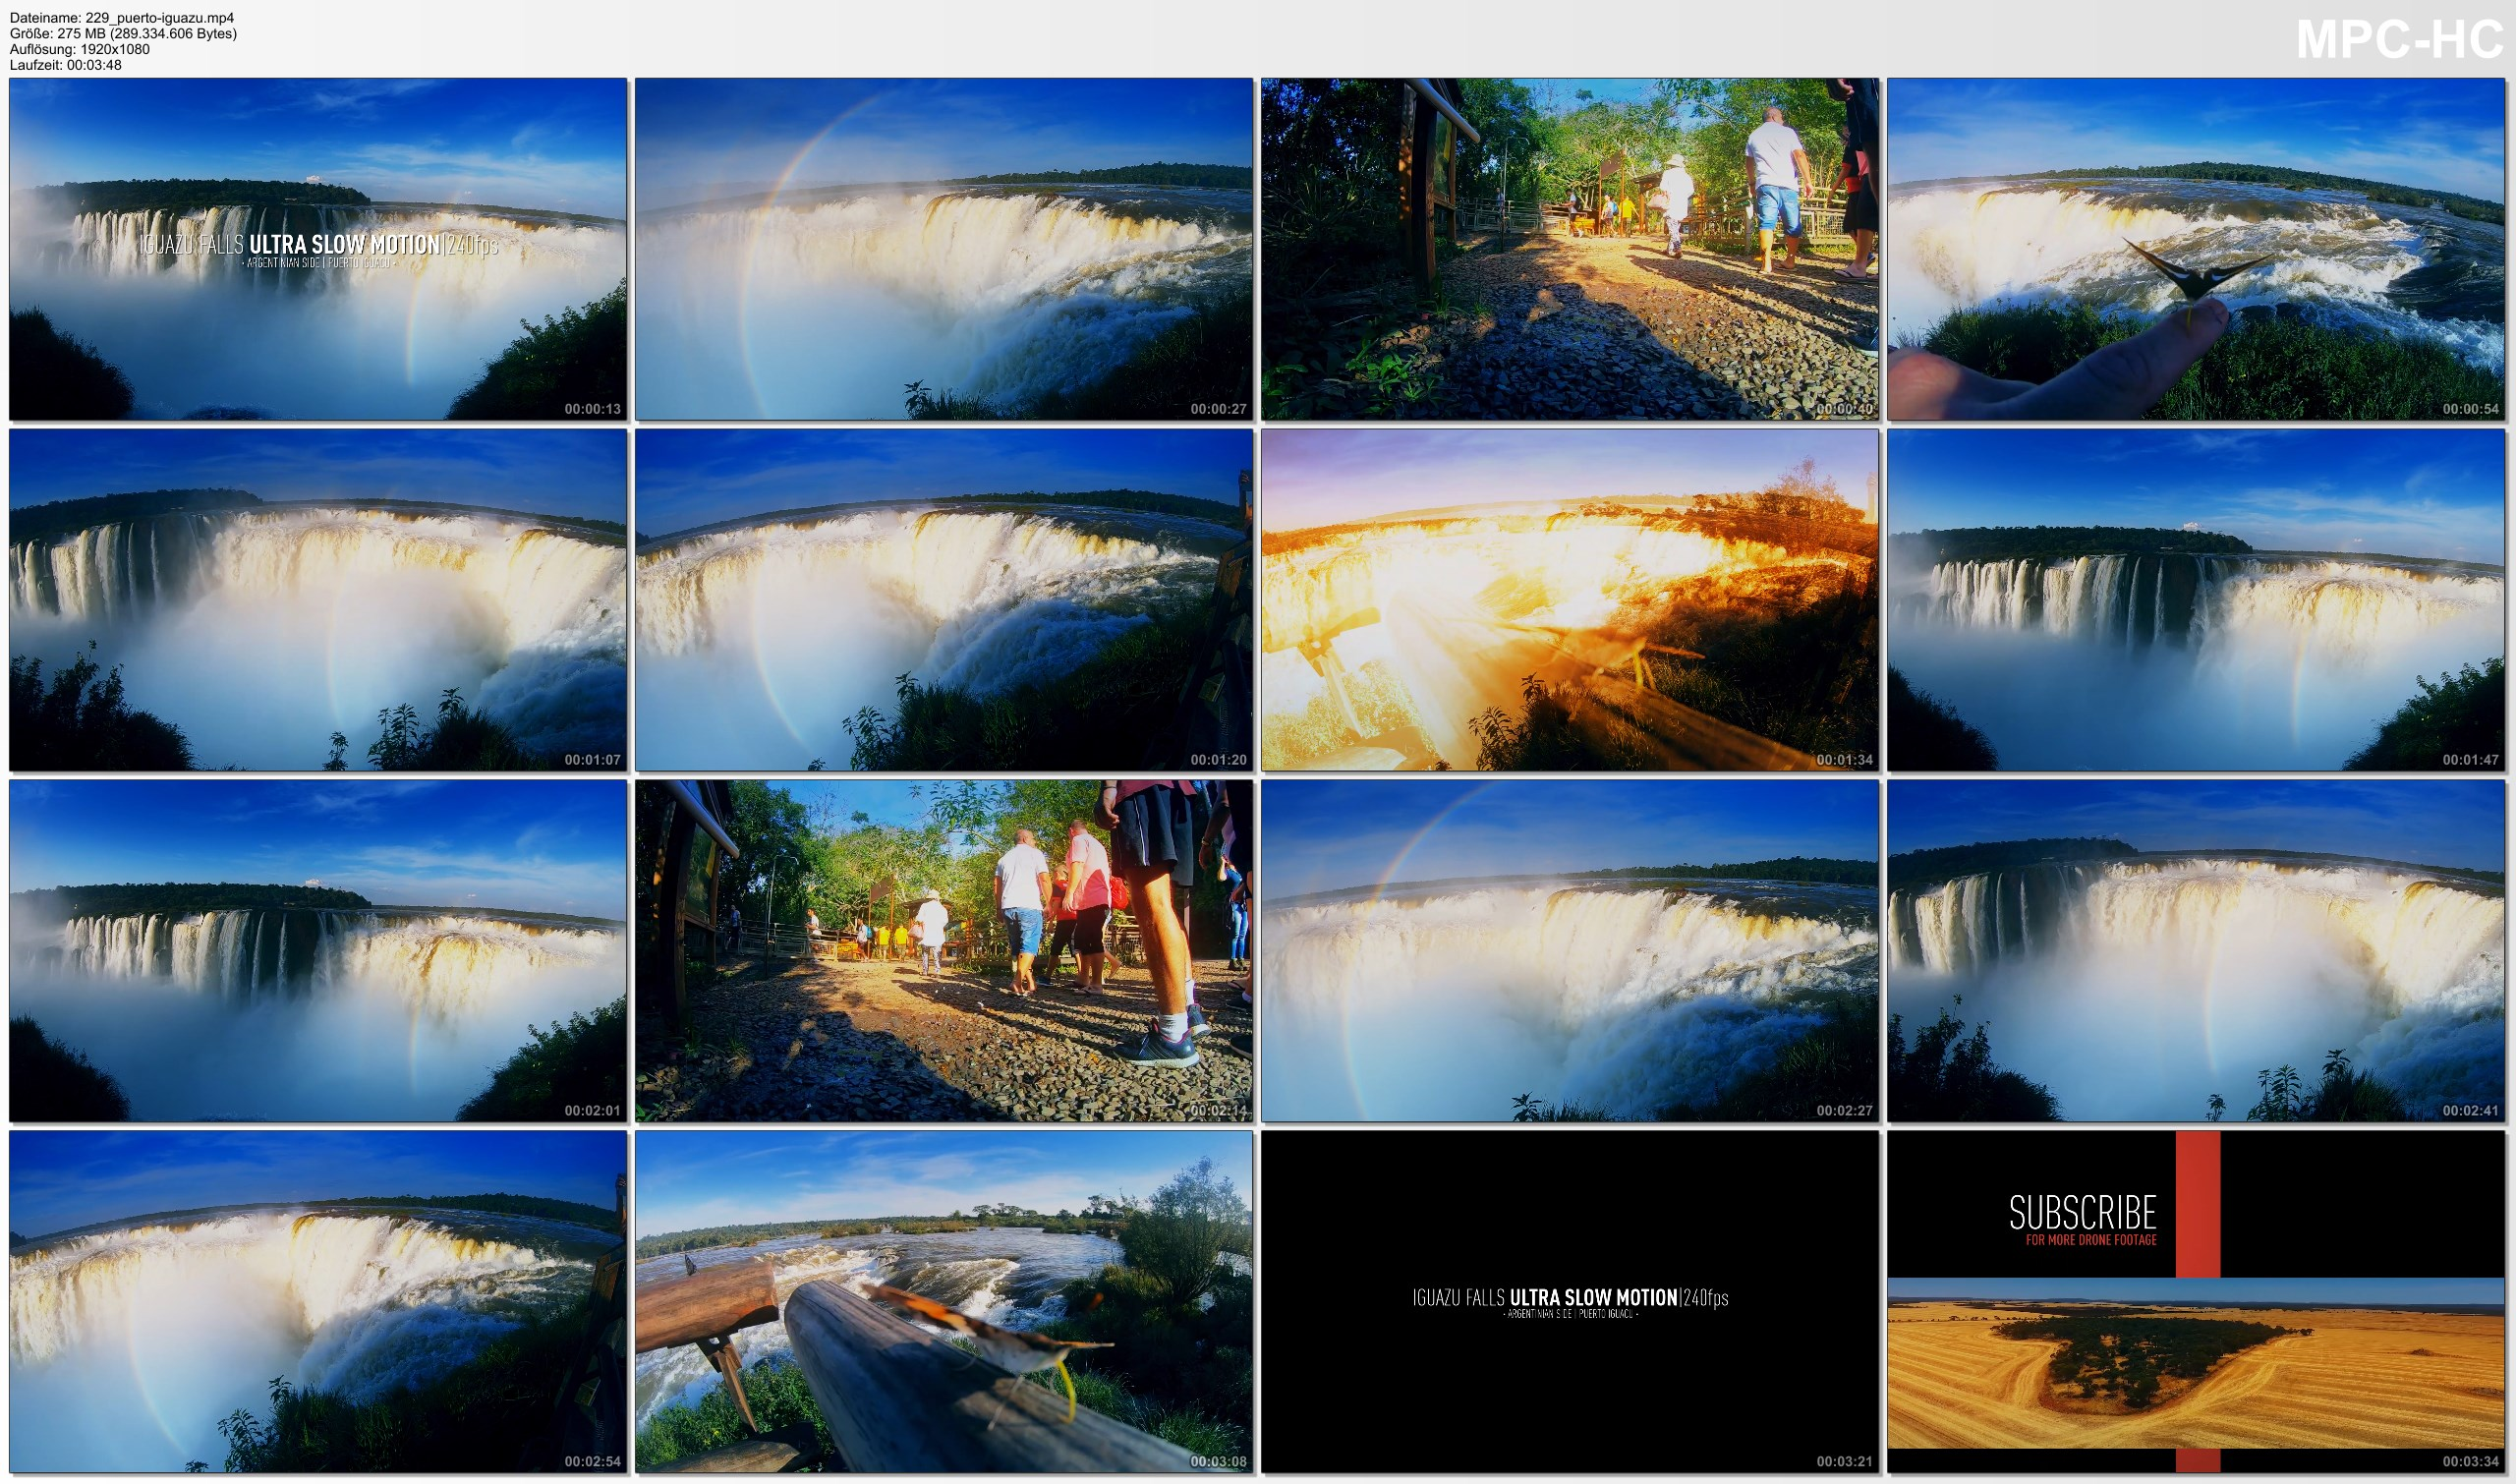 Pictures from Video 【1080p】Footage | Iguazu Falls 2019 ULTRA SLOW MOTION - 240fps ..:: Argentinian Side | Devils Throat